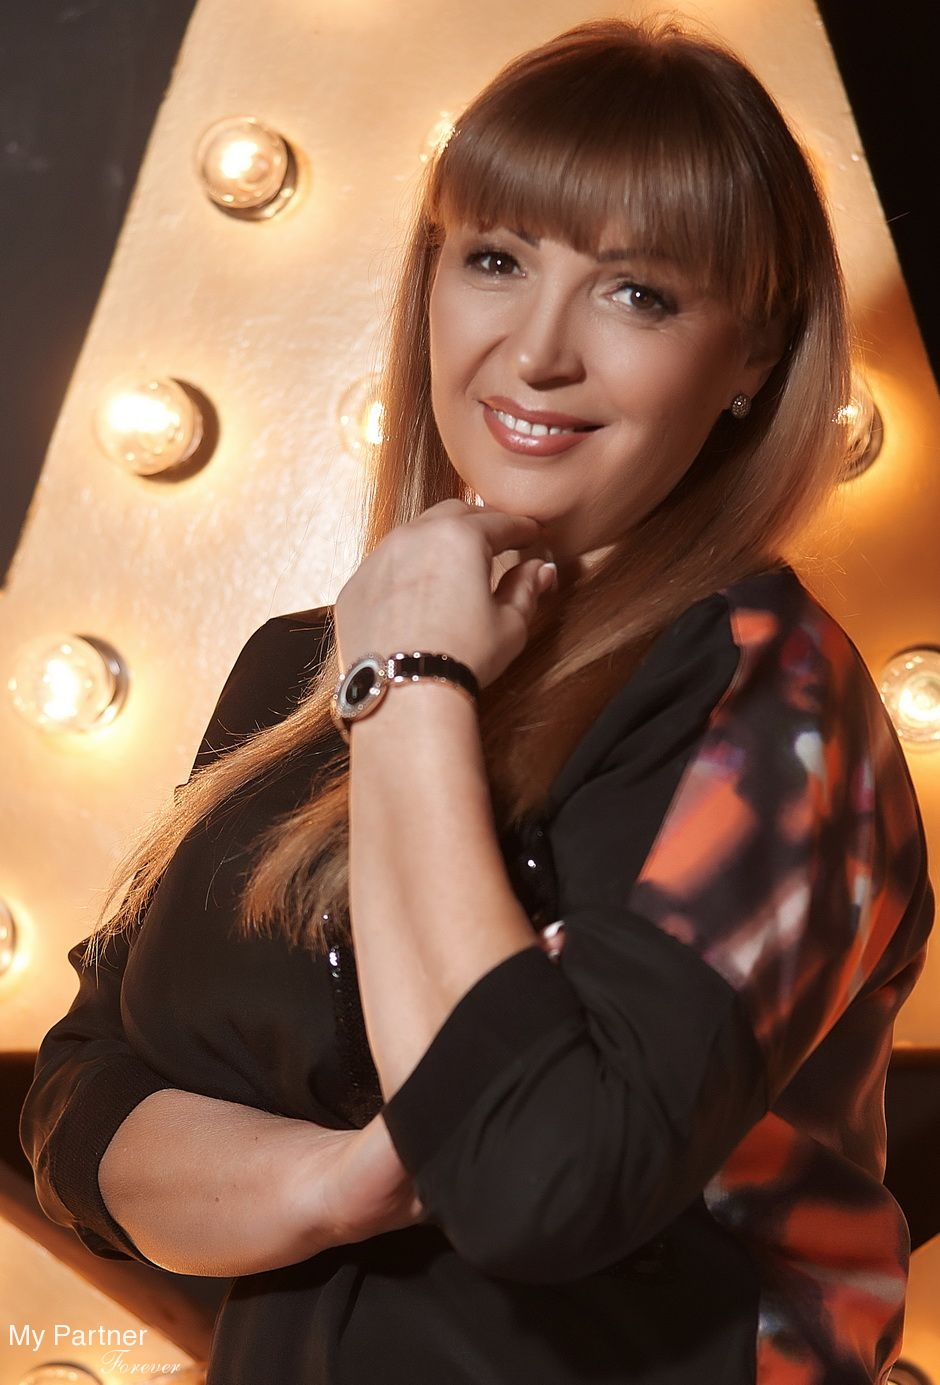 Russian cimmunity chicago dating site